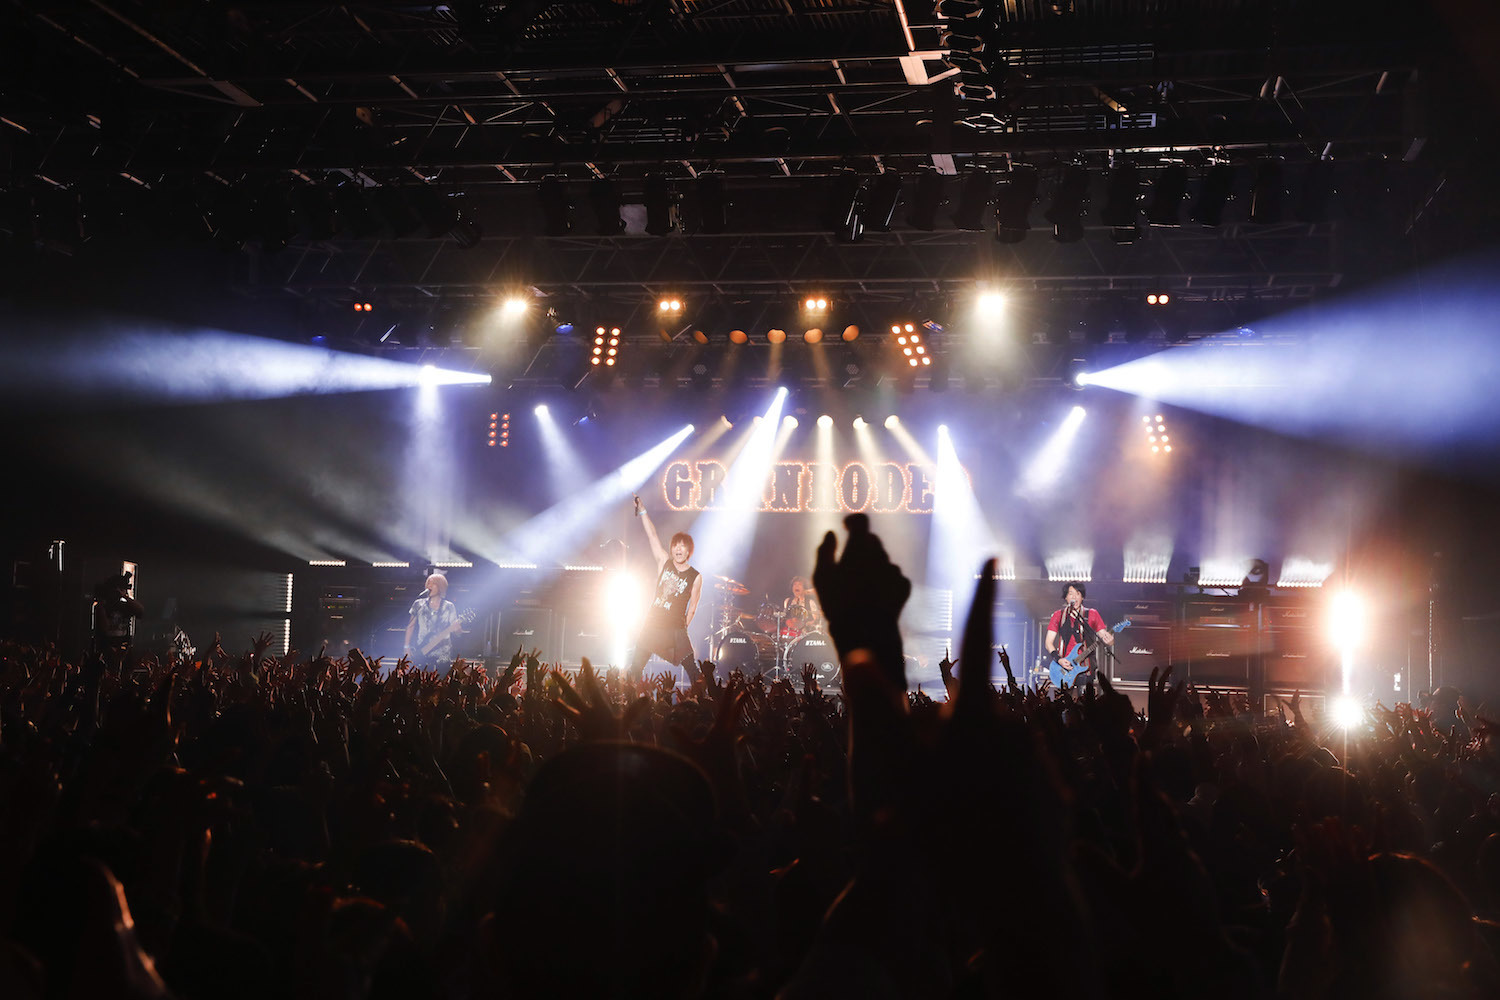 『GRANRODEO LIVE 2017 G7 ROCK☆SHOW 忘れ歌を、届けにきました。』